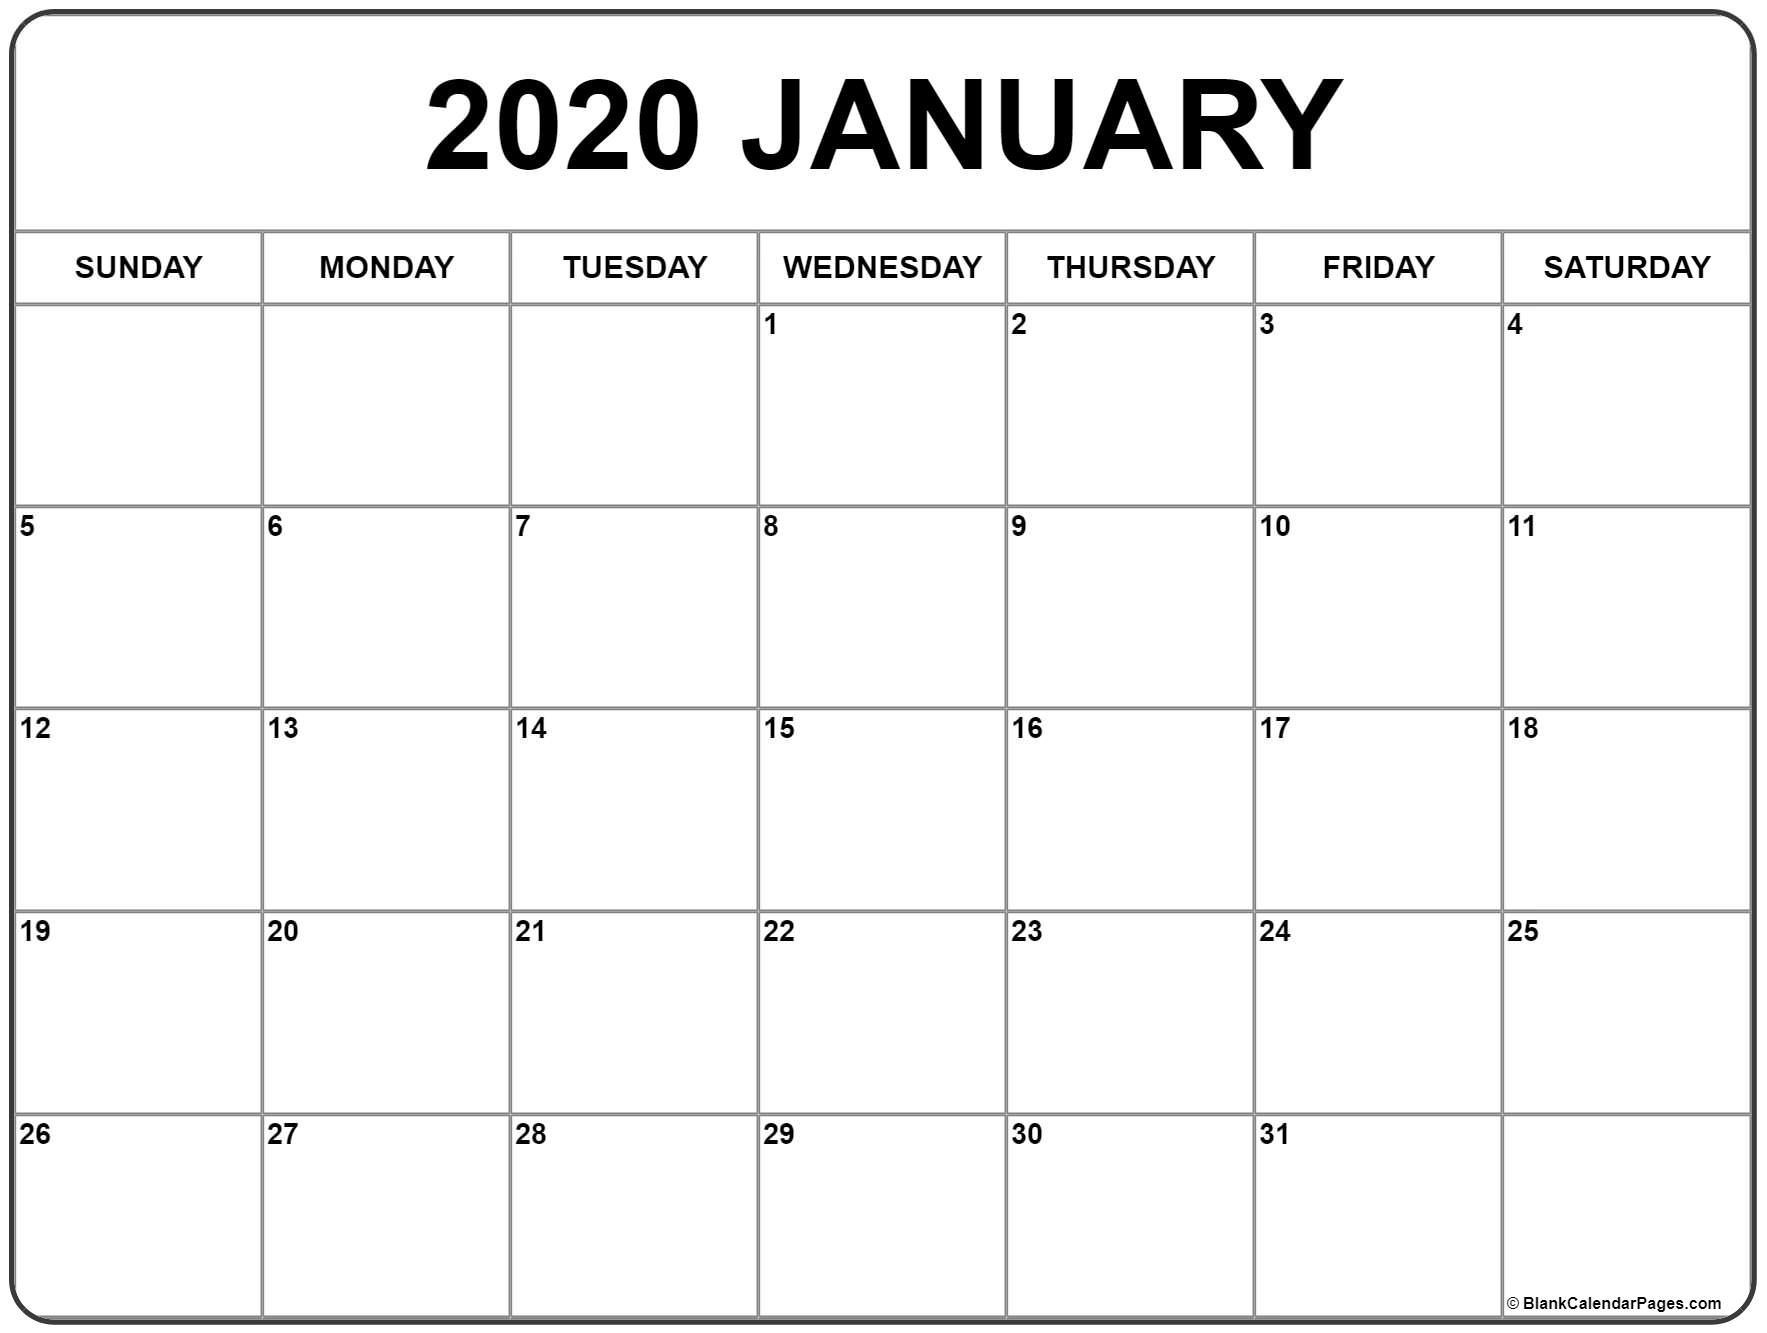 January 2020 Calendar | Free Printable Monthly Calendars-January 2020 Printable Calendar With Holidays